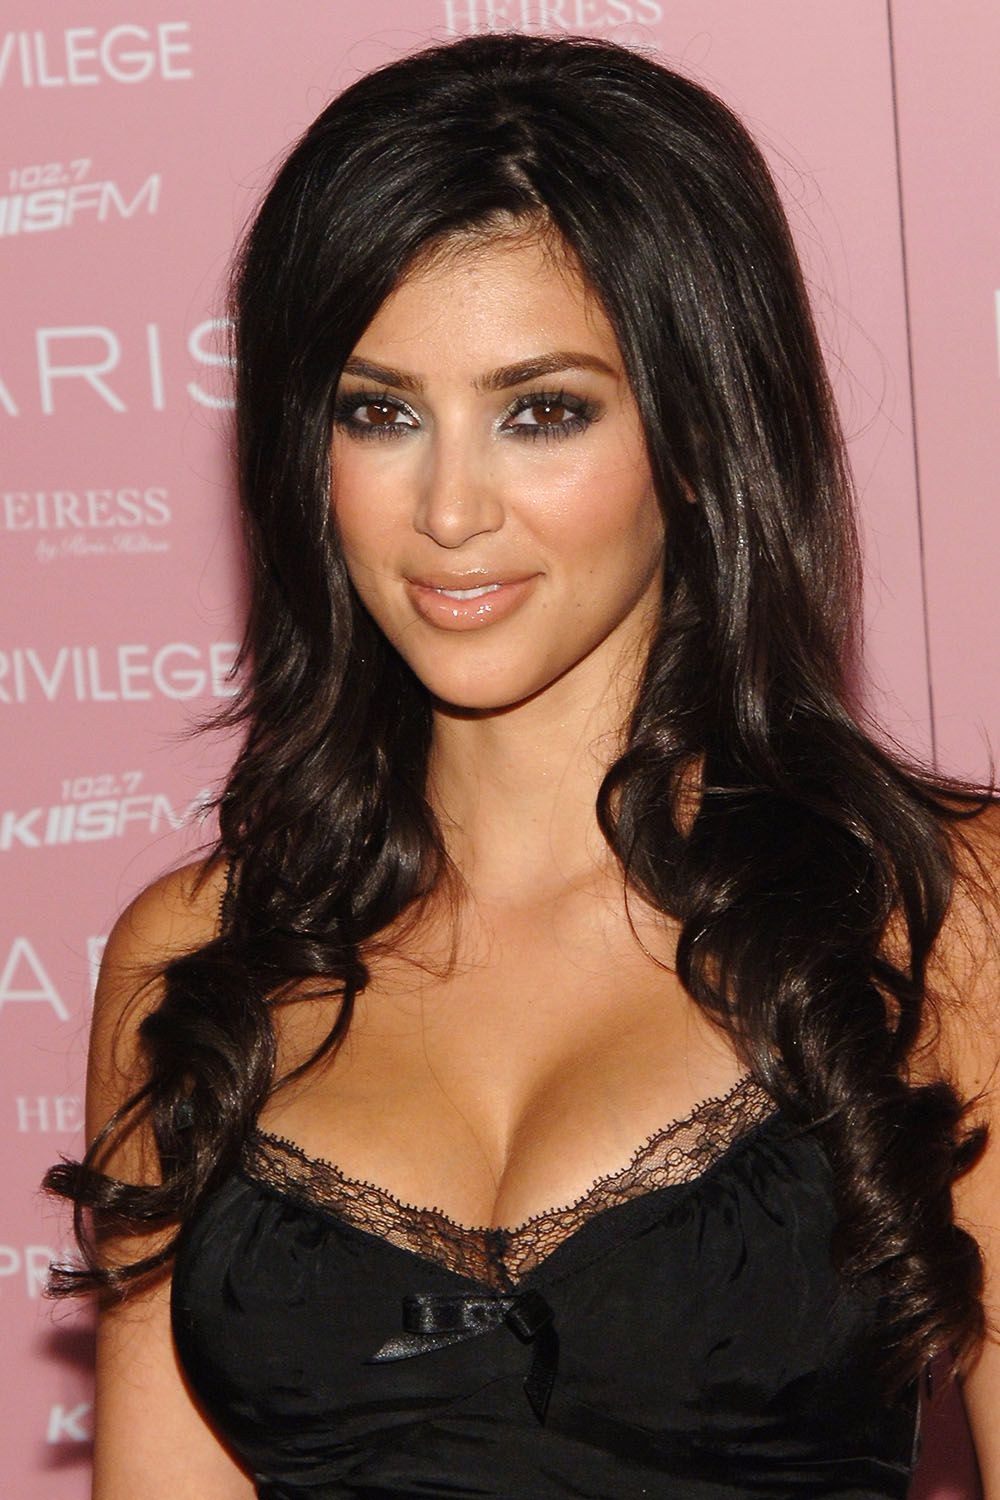 Kim Kardashian's Makeup and Hairstyles - Pictures of Kim